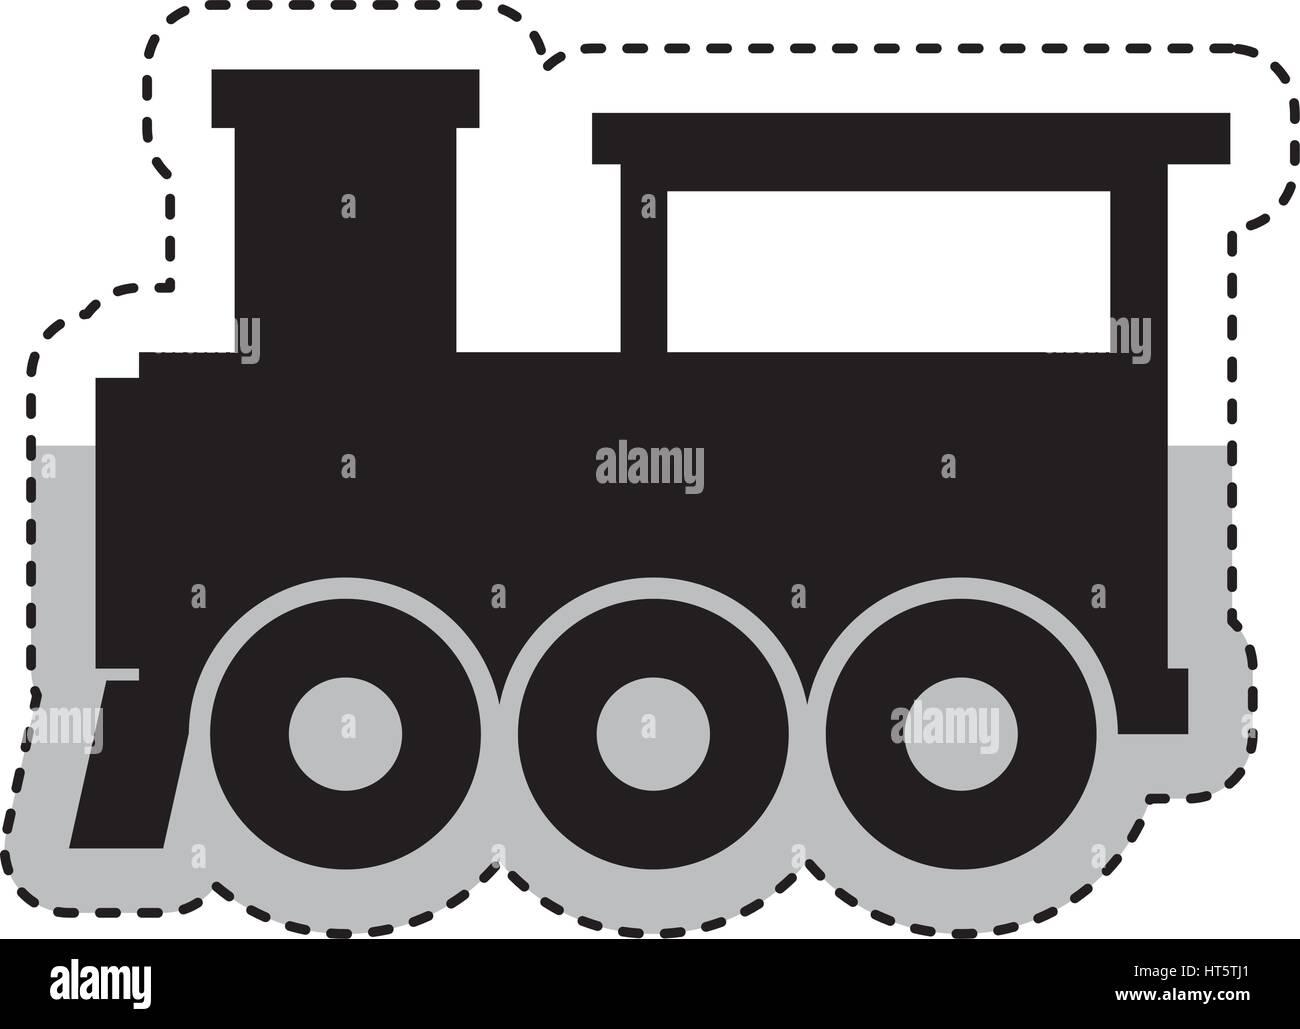 hight resolution of steam train silhouette isolated icon stock image